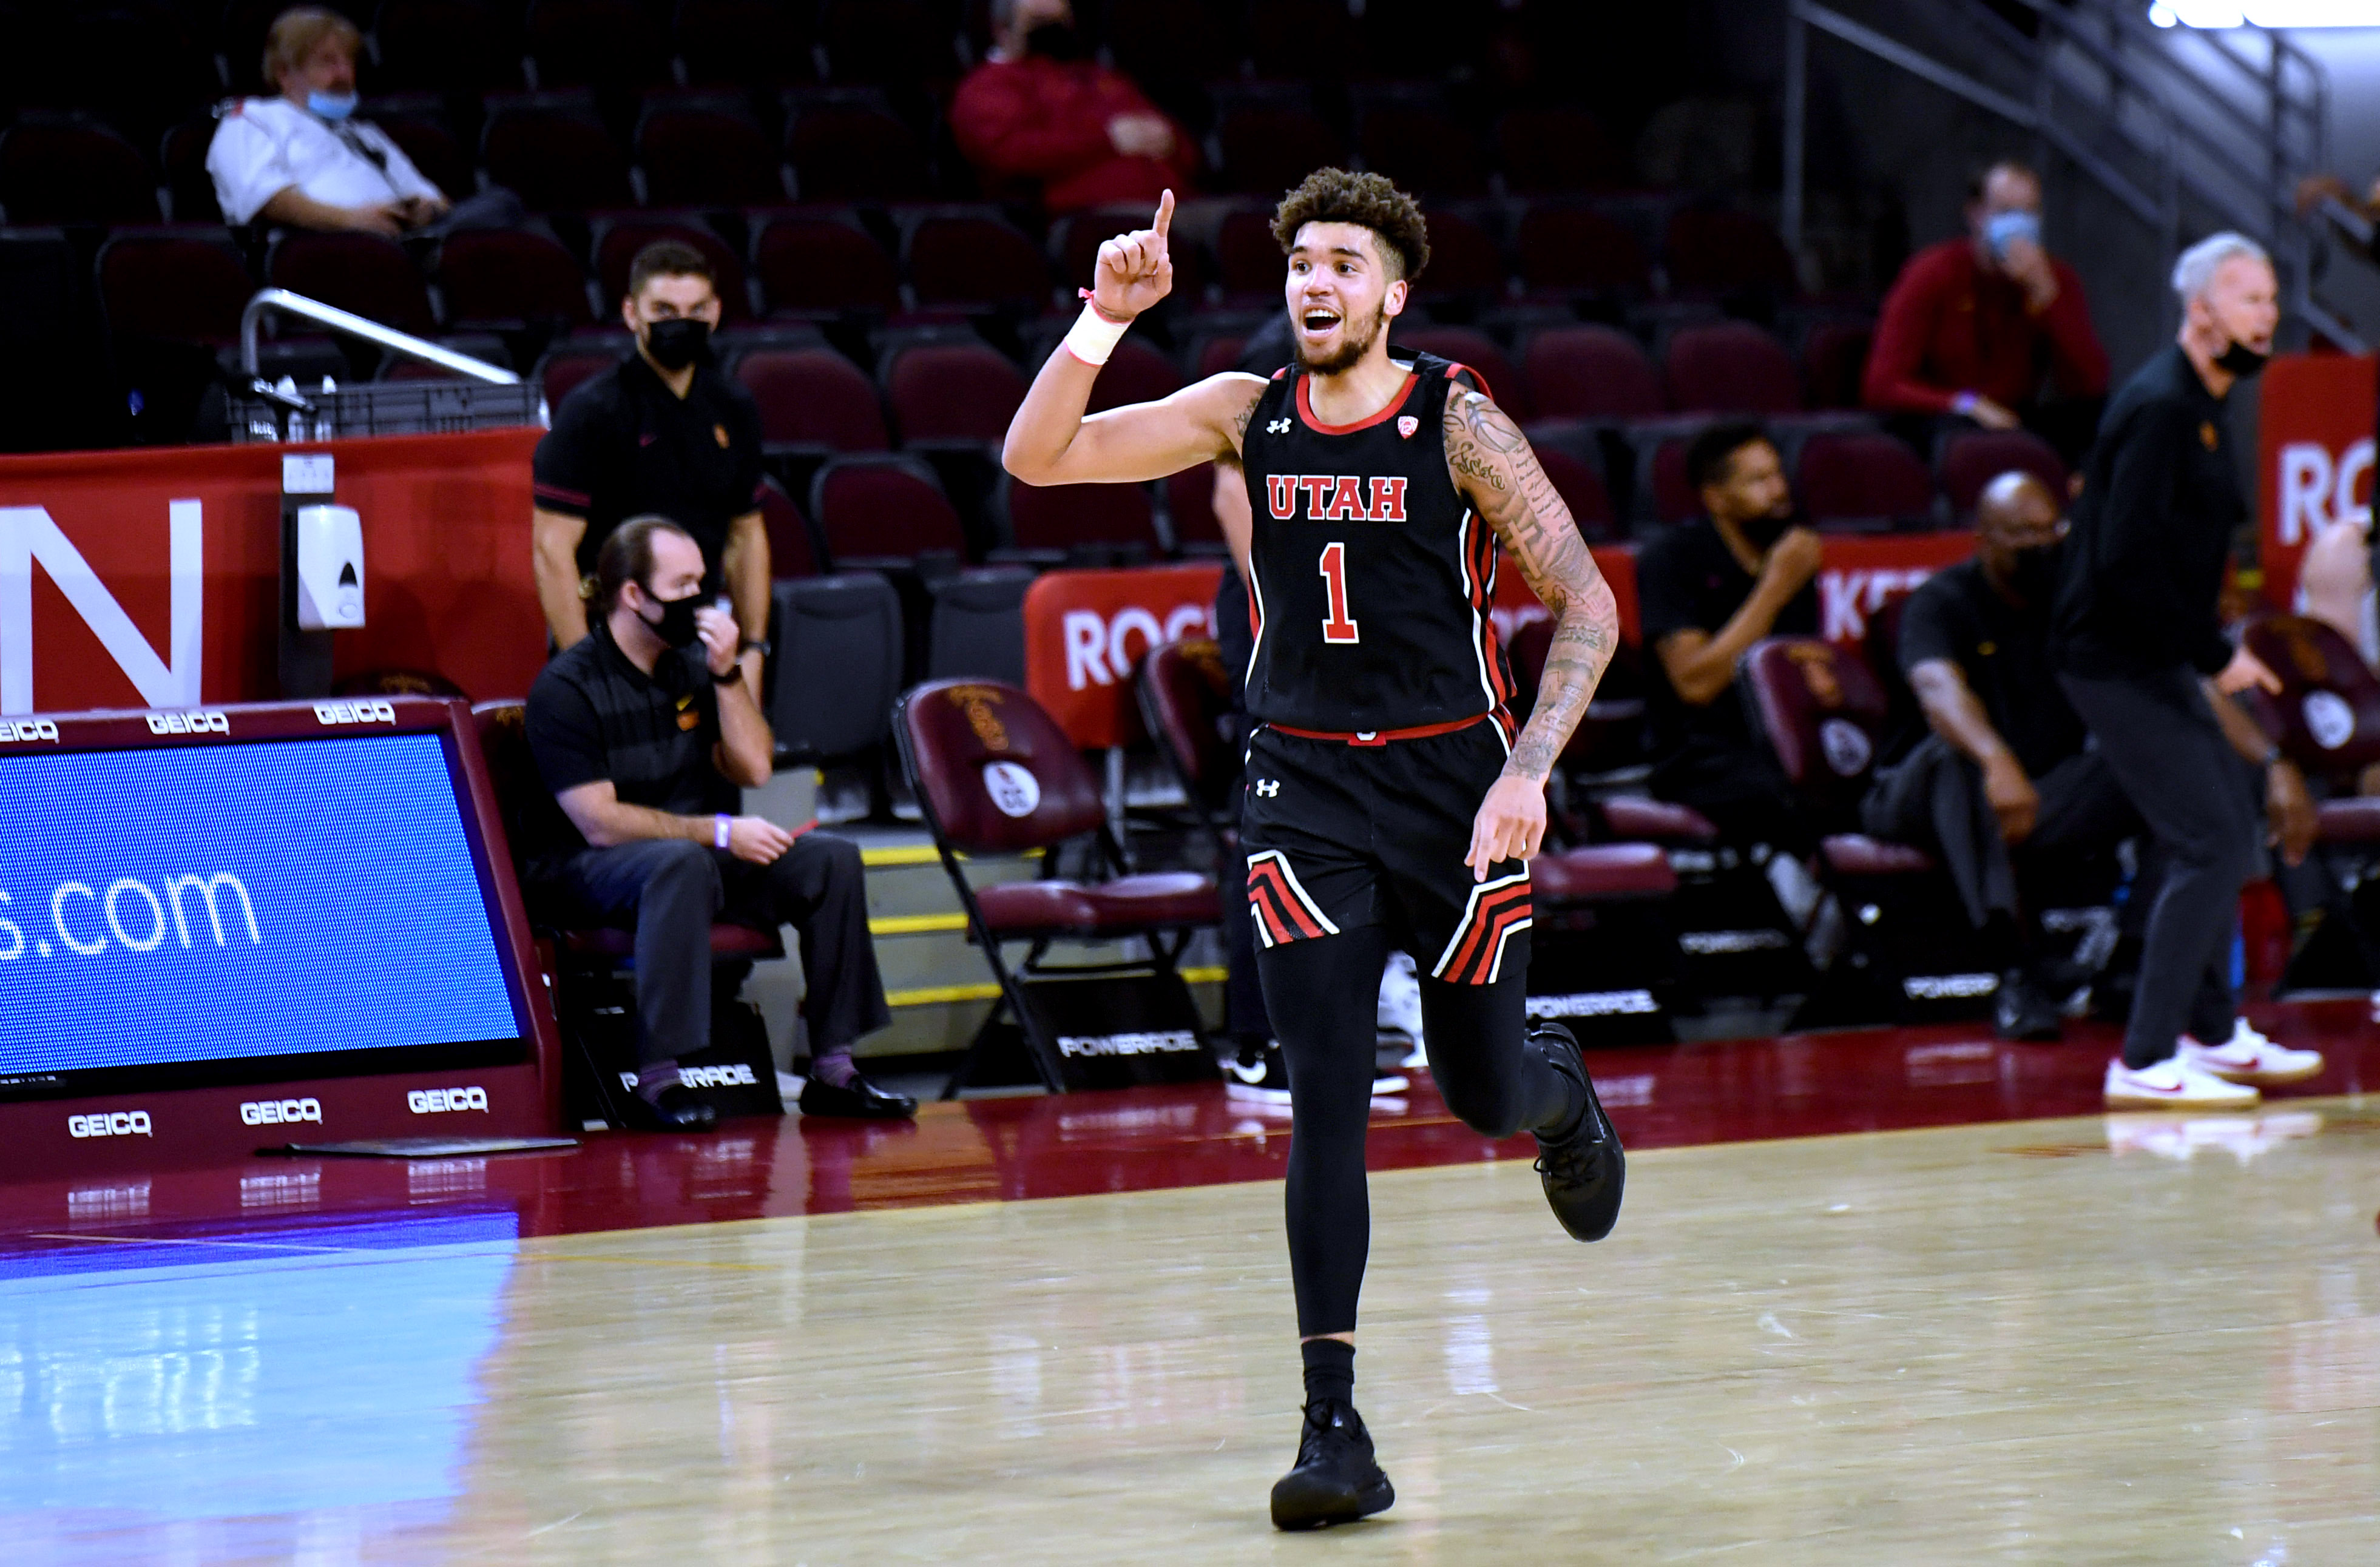 USC Trojans defeated the Utah Utes 64-46 during NCAA basketball game at Galen Center in Los Angeles.